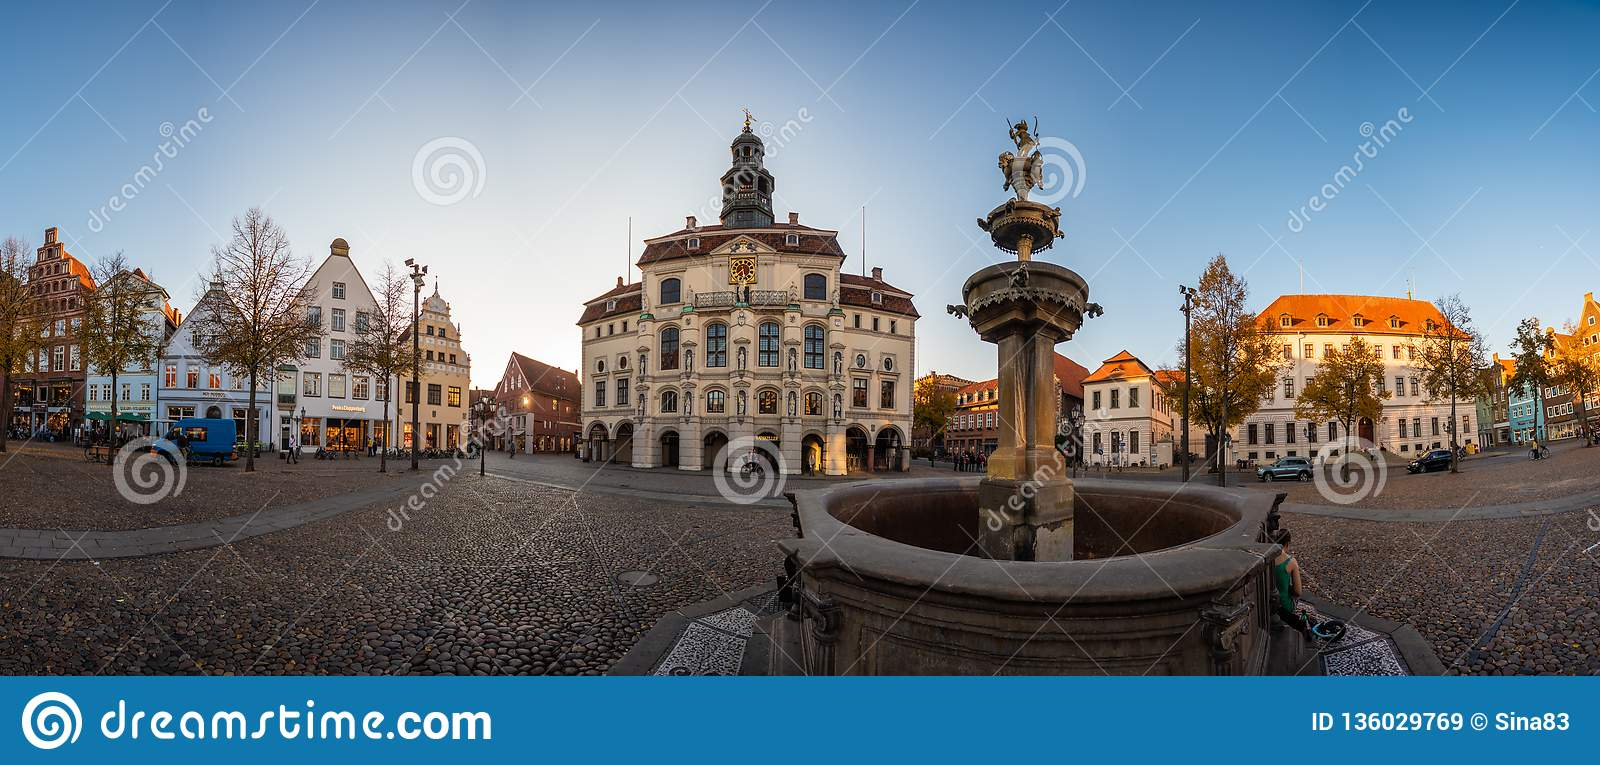 Lueneburg Old City Hall And Fountain And Cupid Stock Image   Image ...